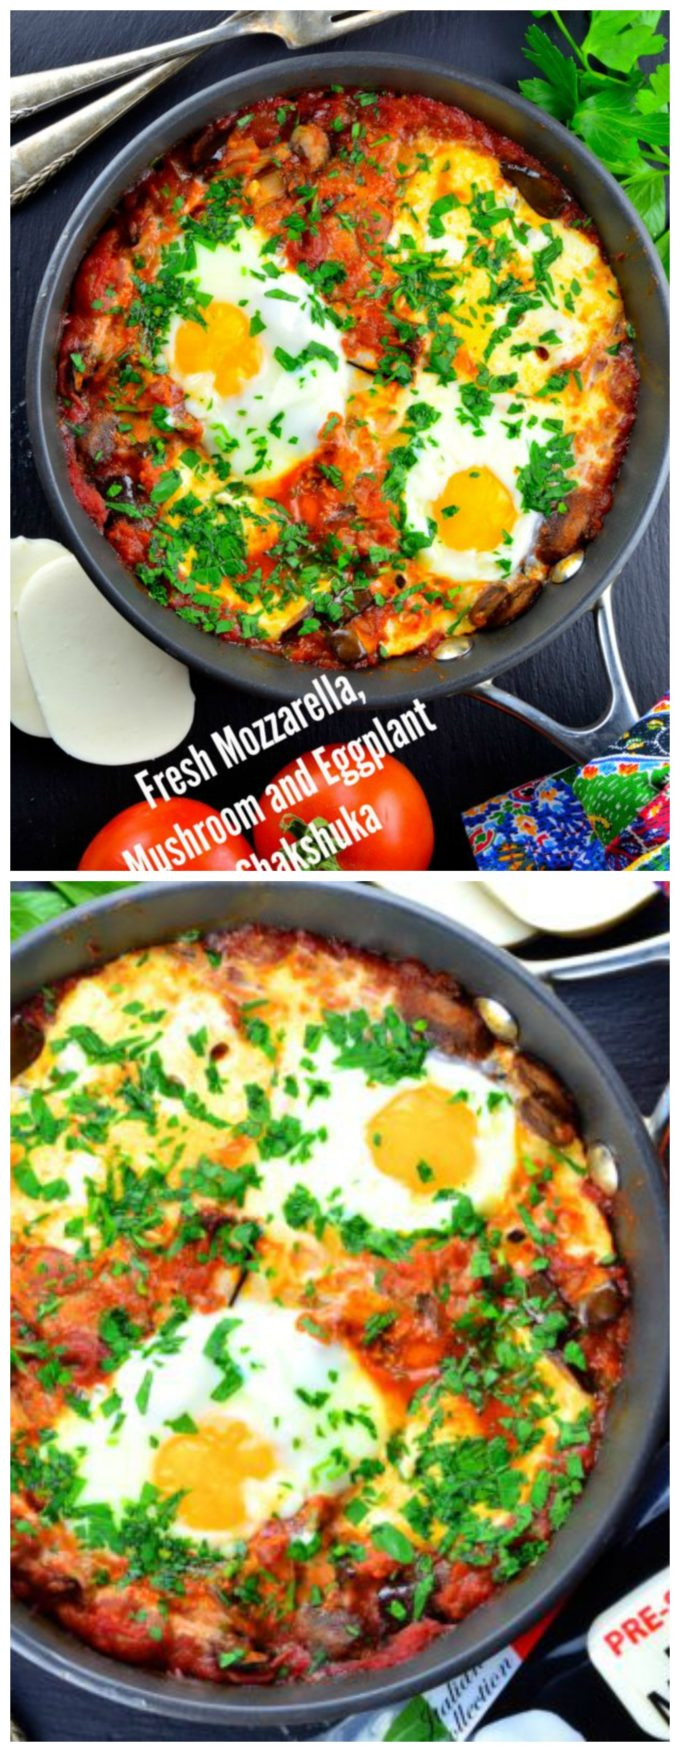 Fresh Mozzarella, Mushroom and Eggplant Shakshuka . Great vegetarian breakfast recipe for Passover and all year long. I eat it for dinner too!